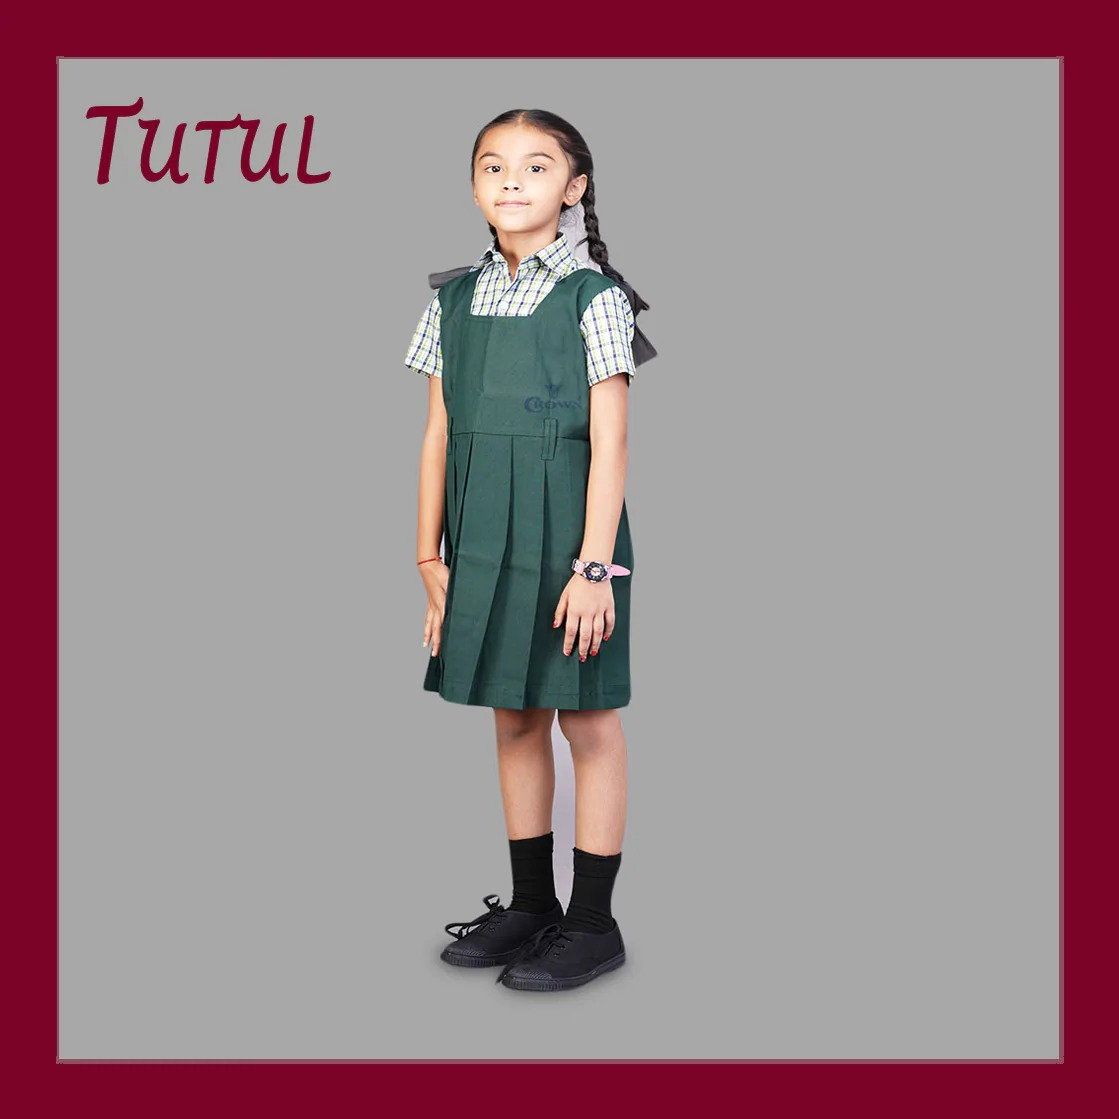 Tutul TN Govt 1 - 5th Std Bottle Green Colour Pinafore (5-6 Years)